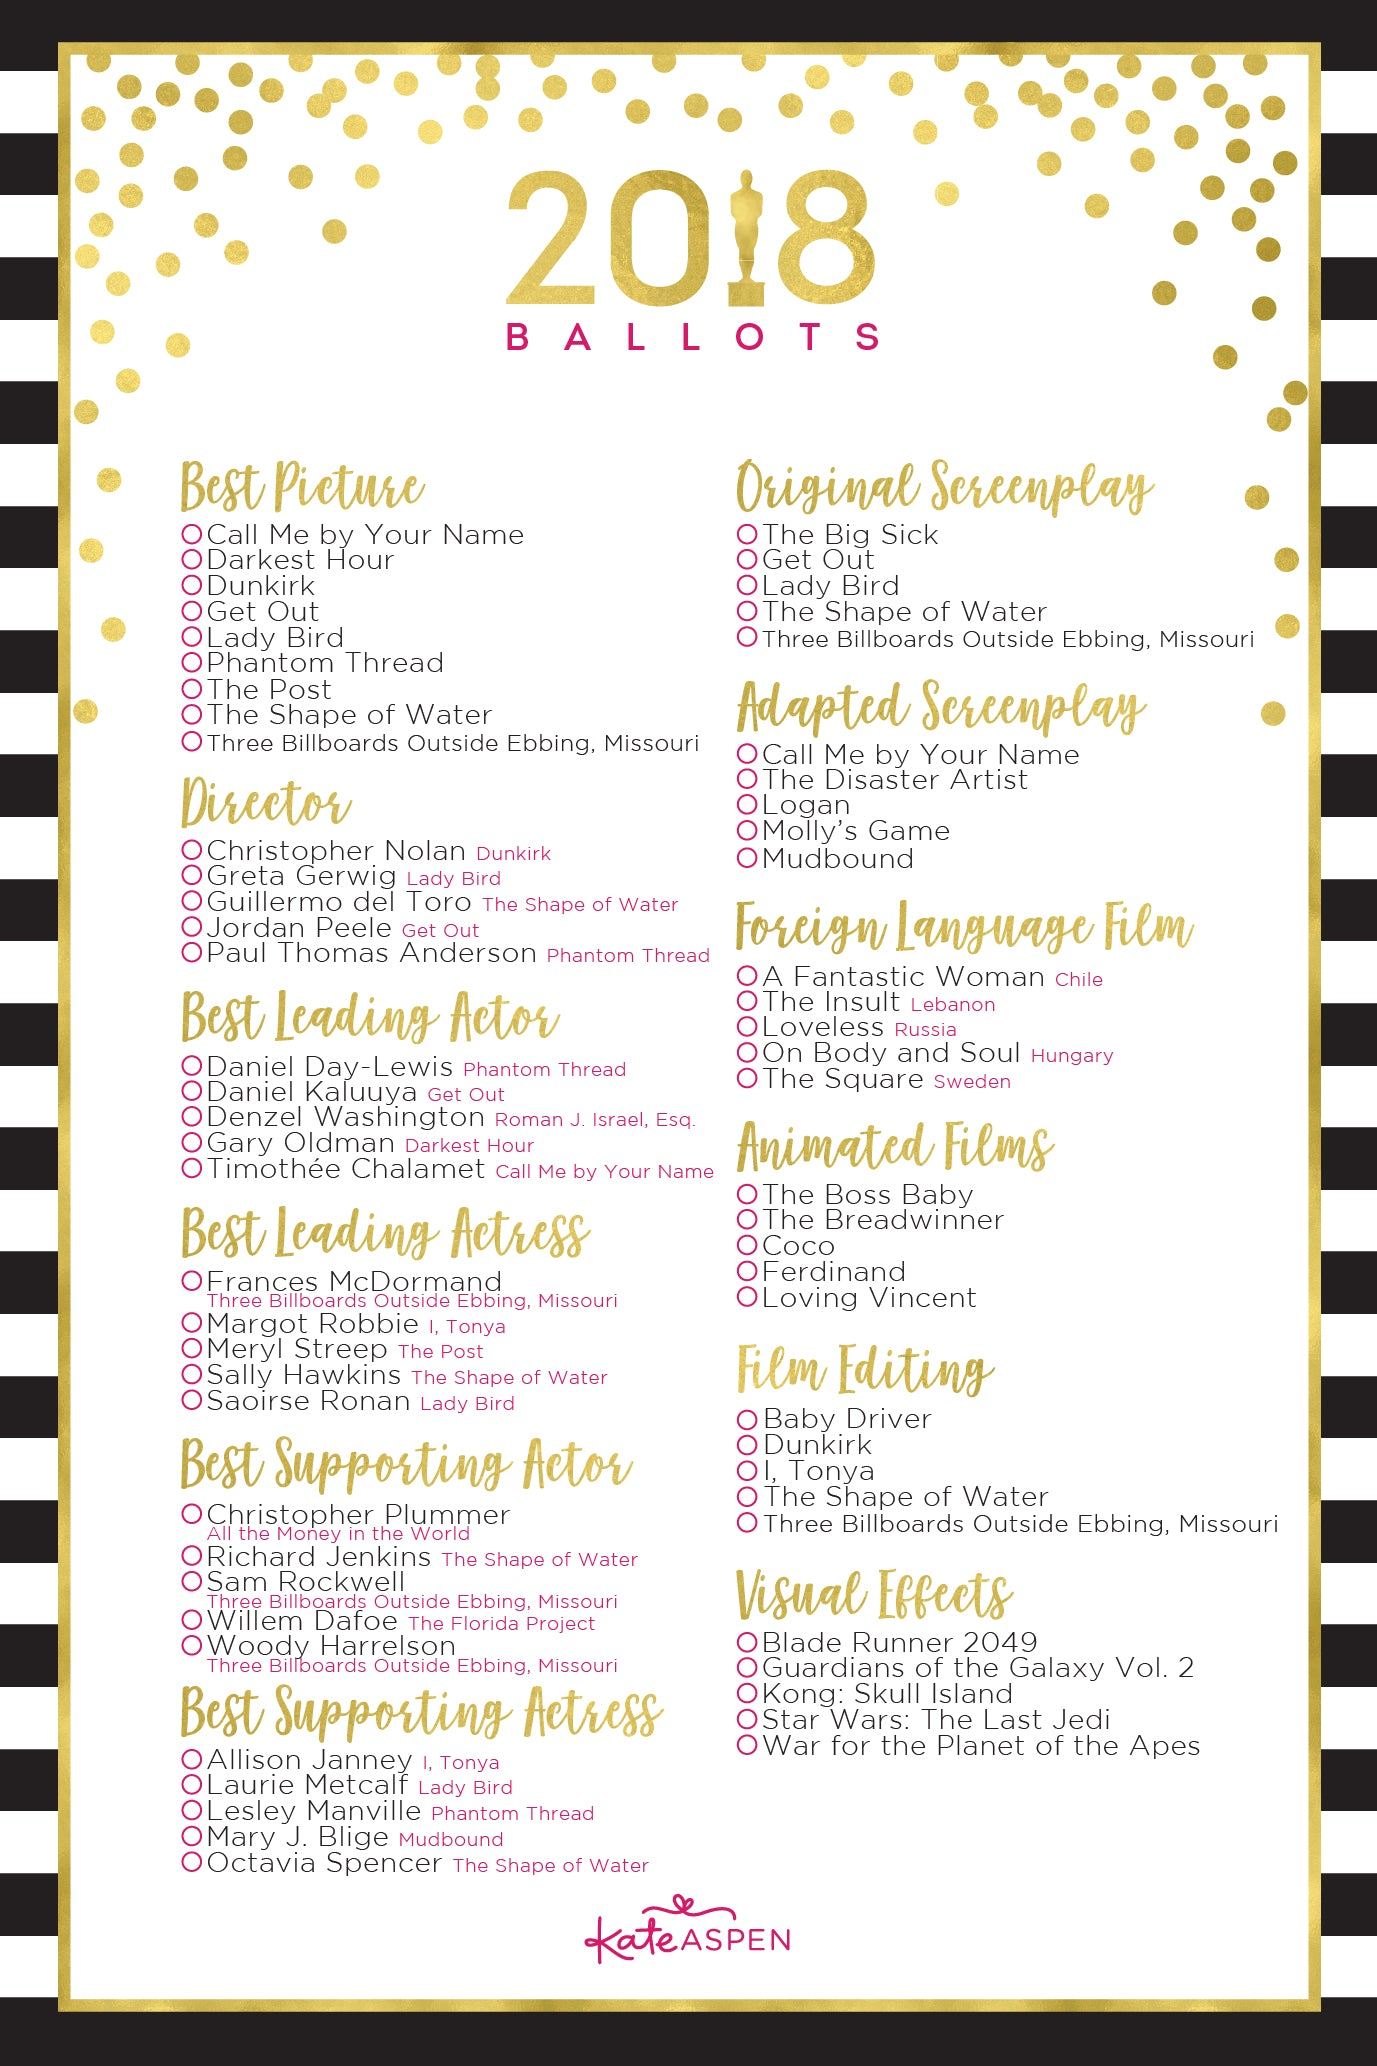 2018 Oscar Ballot Printable | How to Host an Award-Winning Viewing Party | Kate Aspen